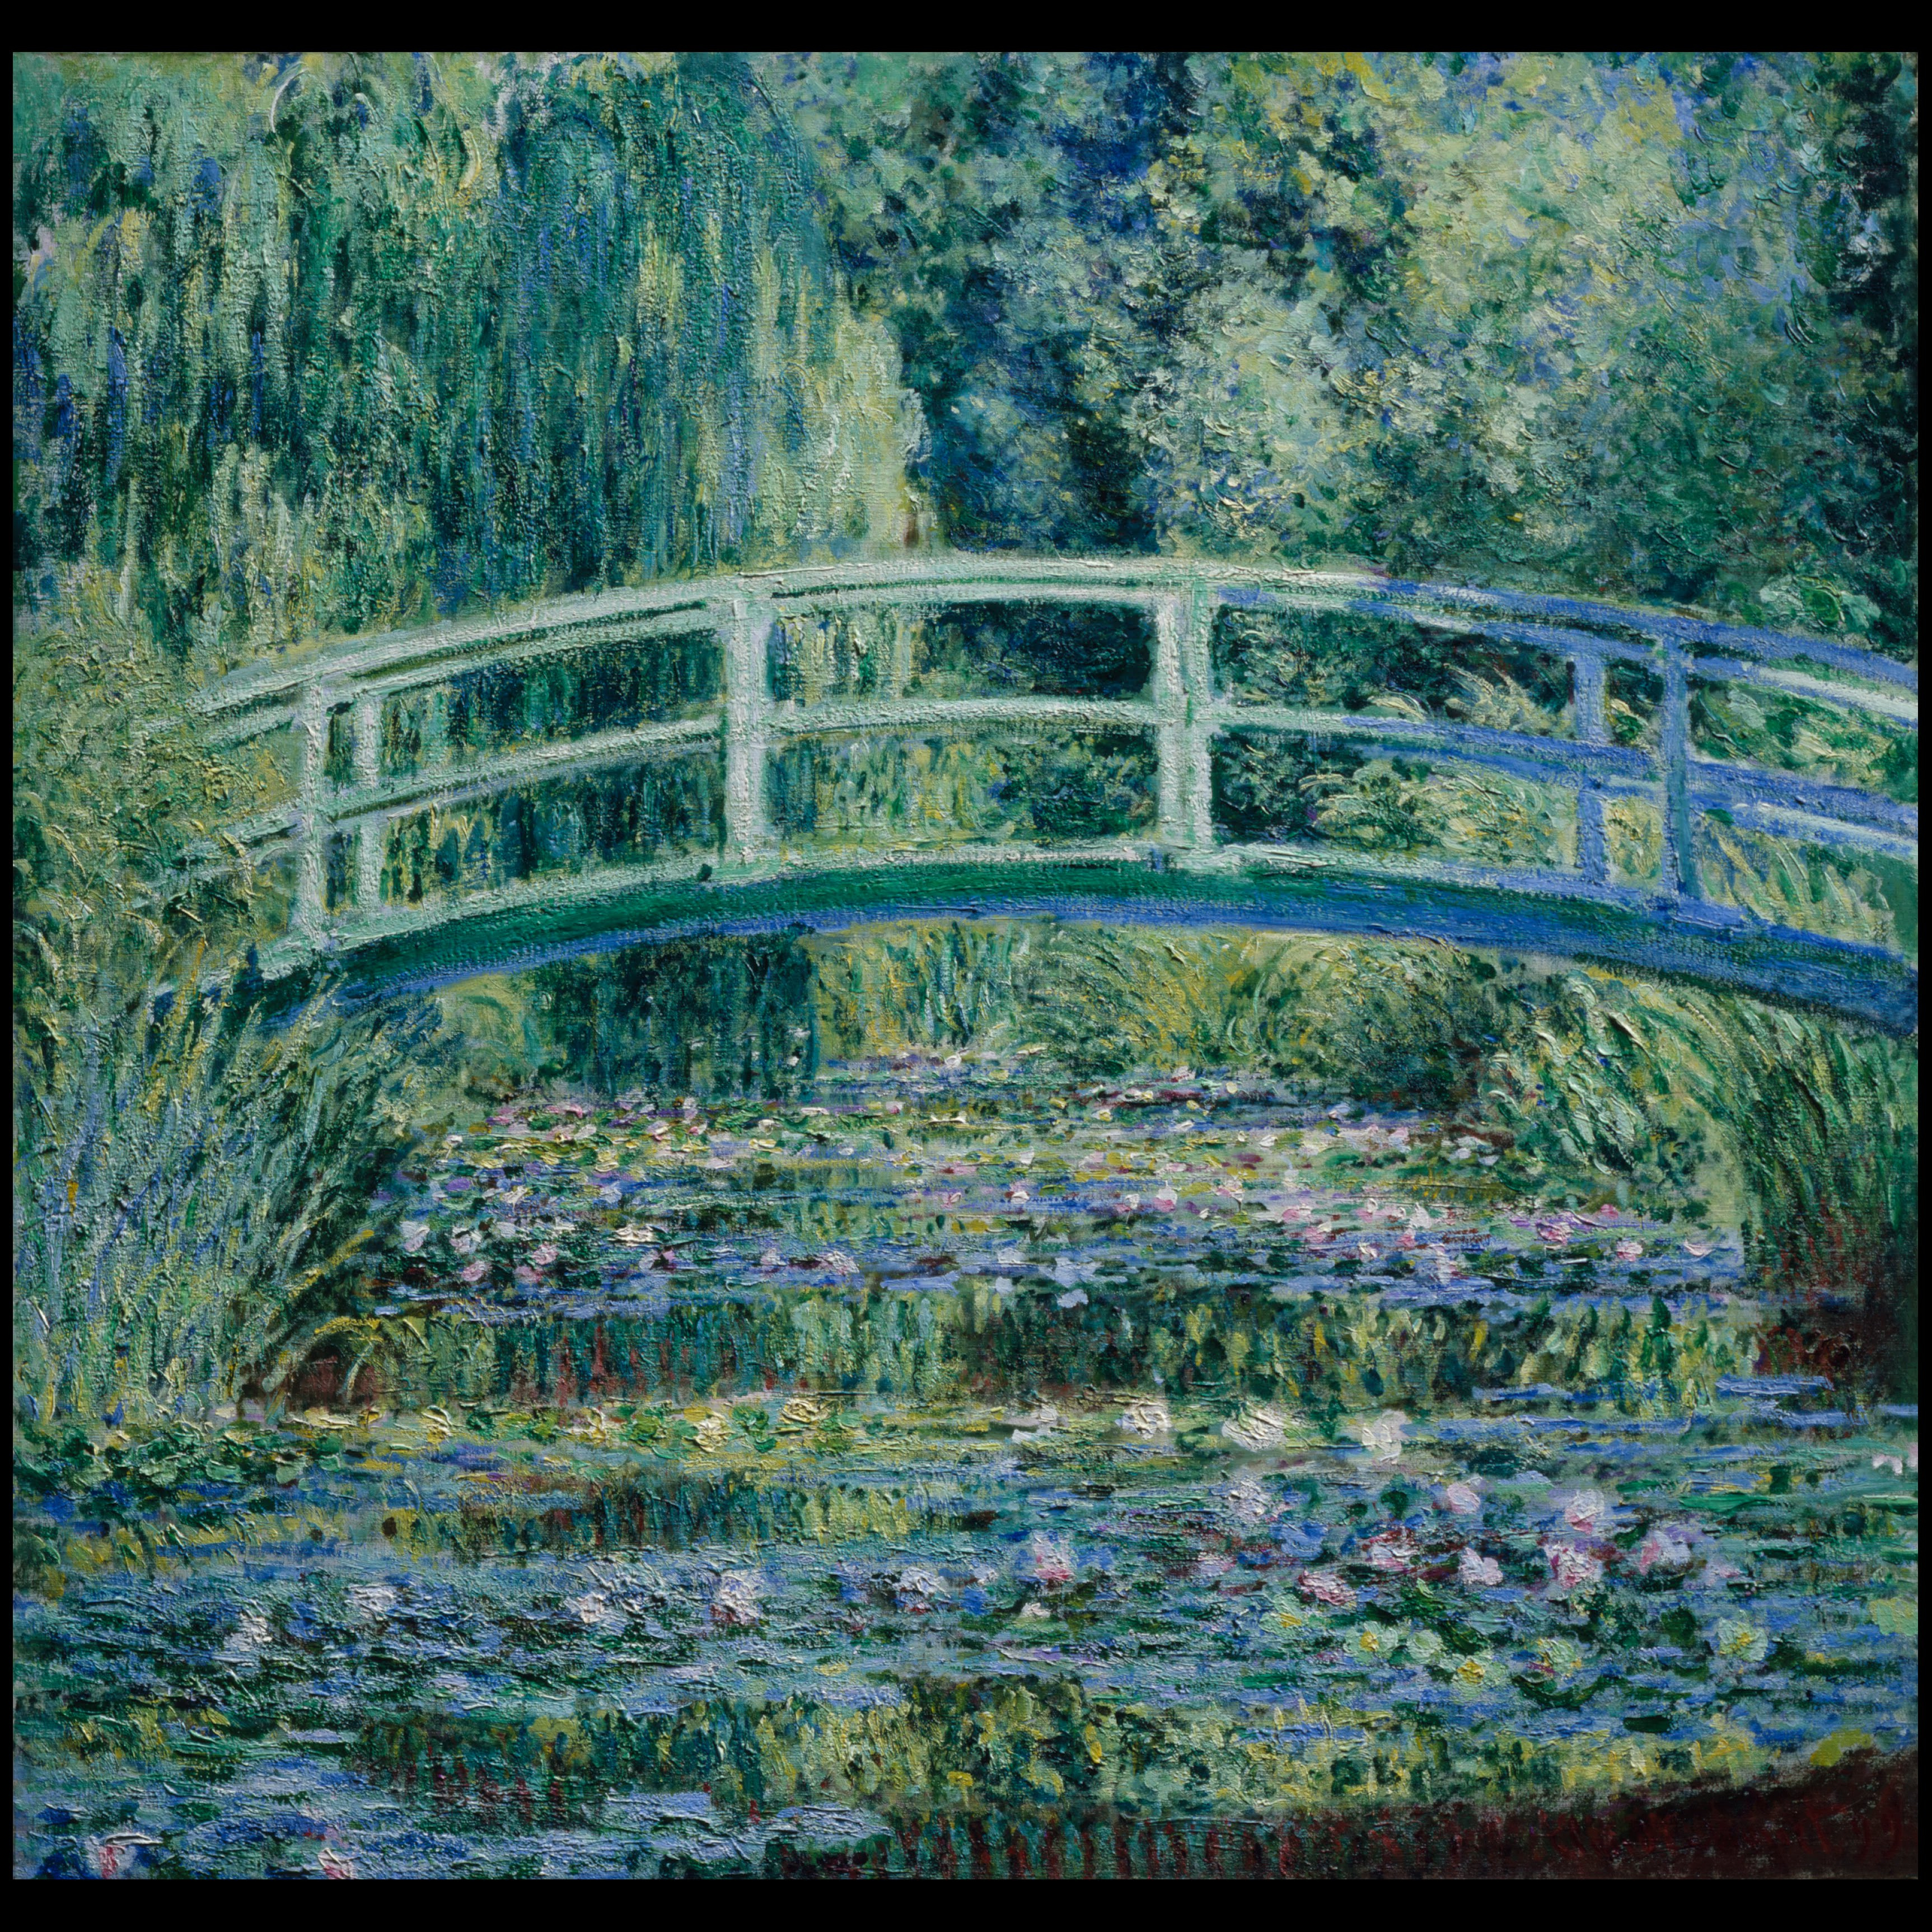 painting of water lilies and a Japanese bridge by Monet